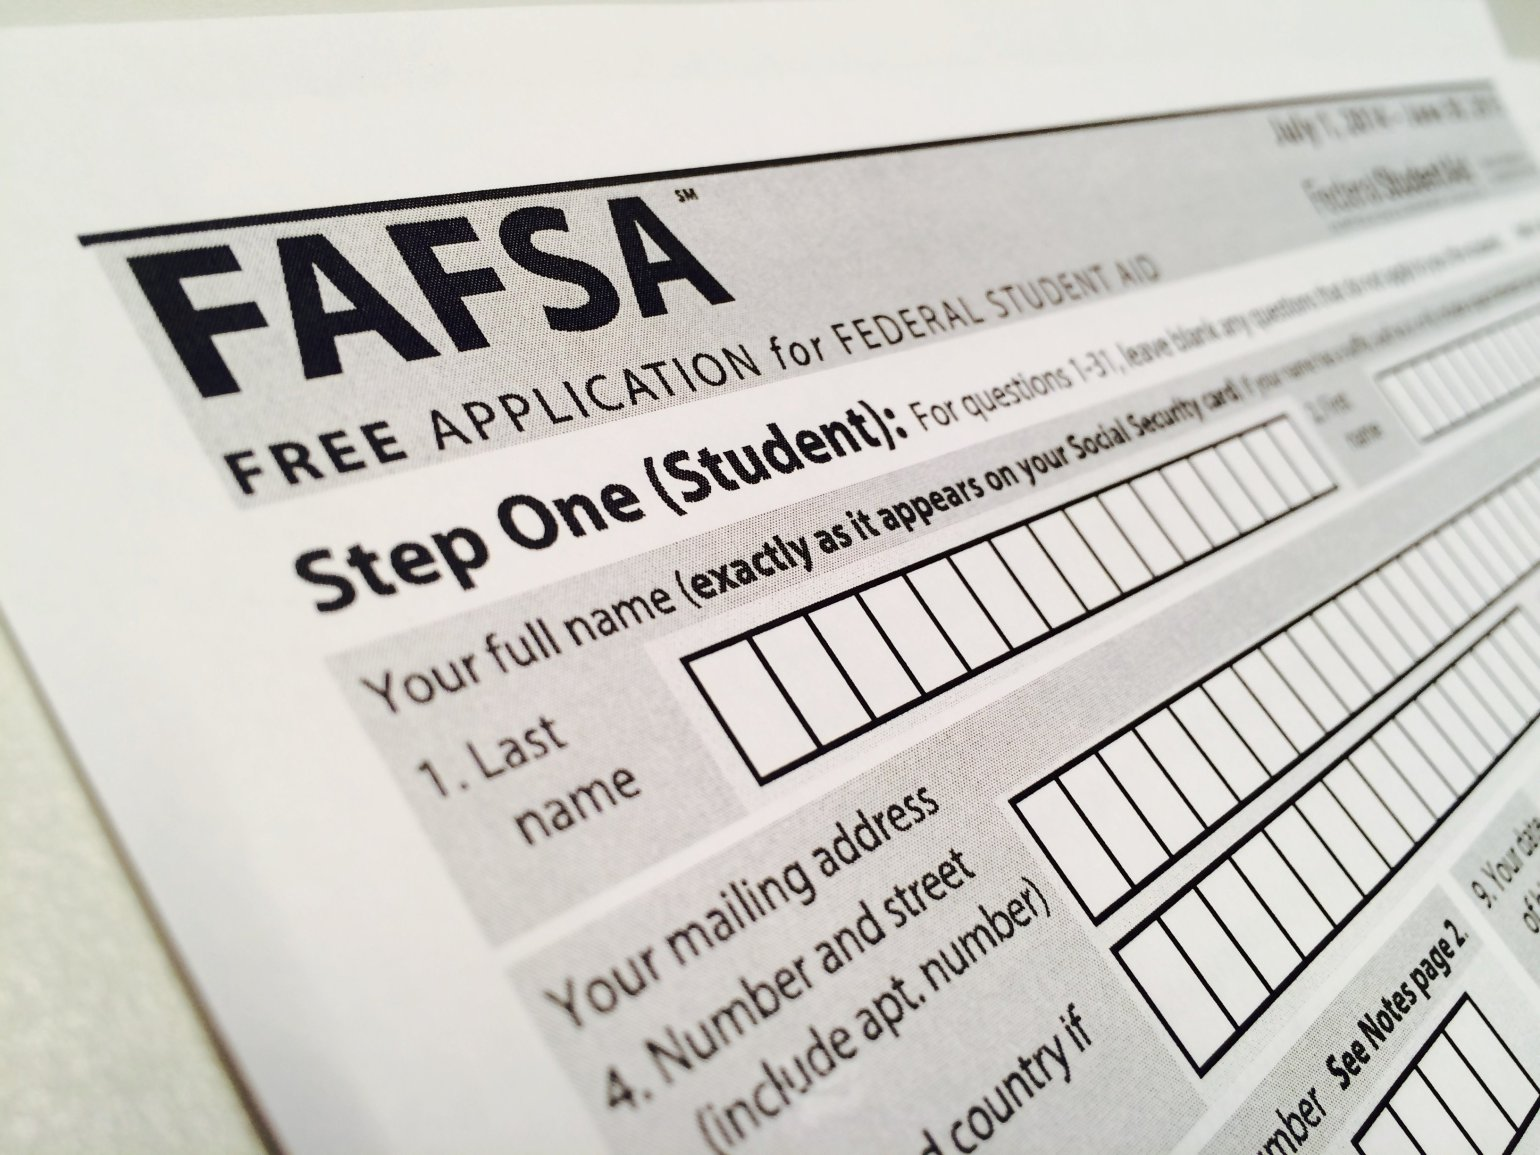 FAFSA Review - $299